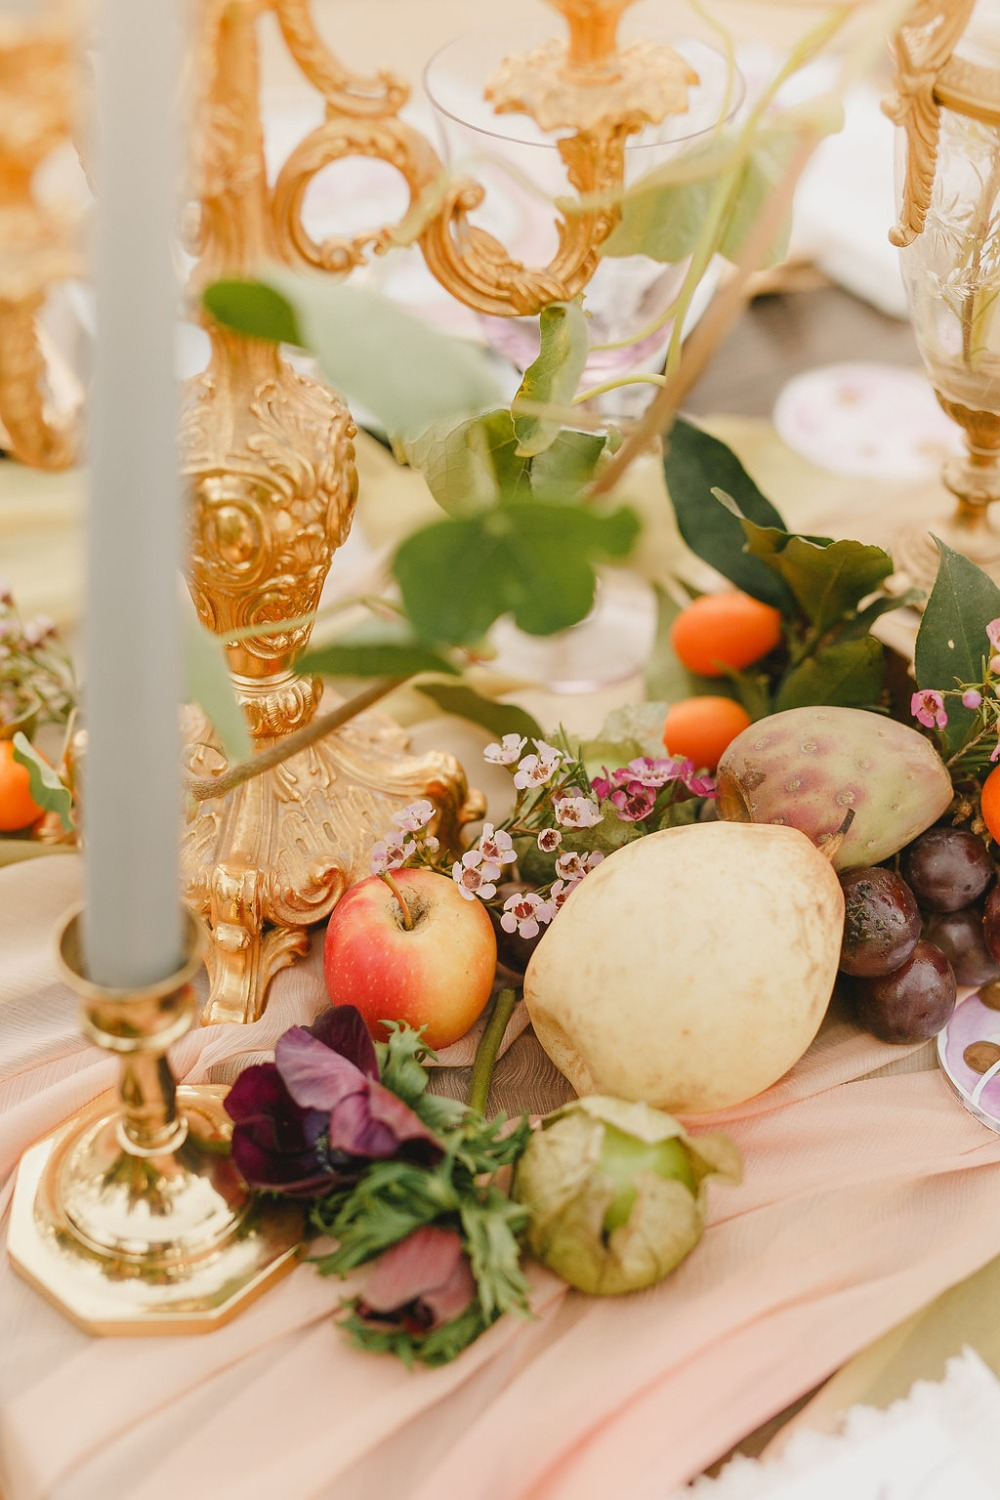 Floral Fairytale Shoot at Heavenly Oaks Flower Farm Fresh Table Fruits